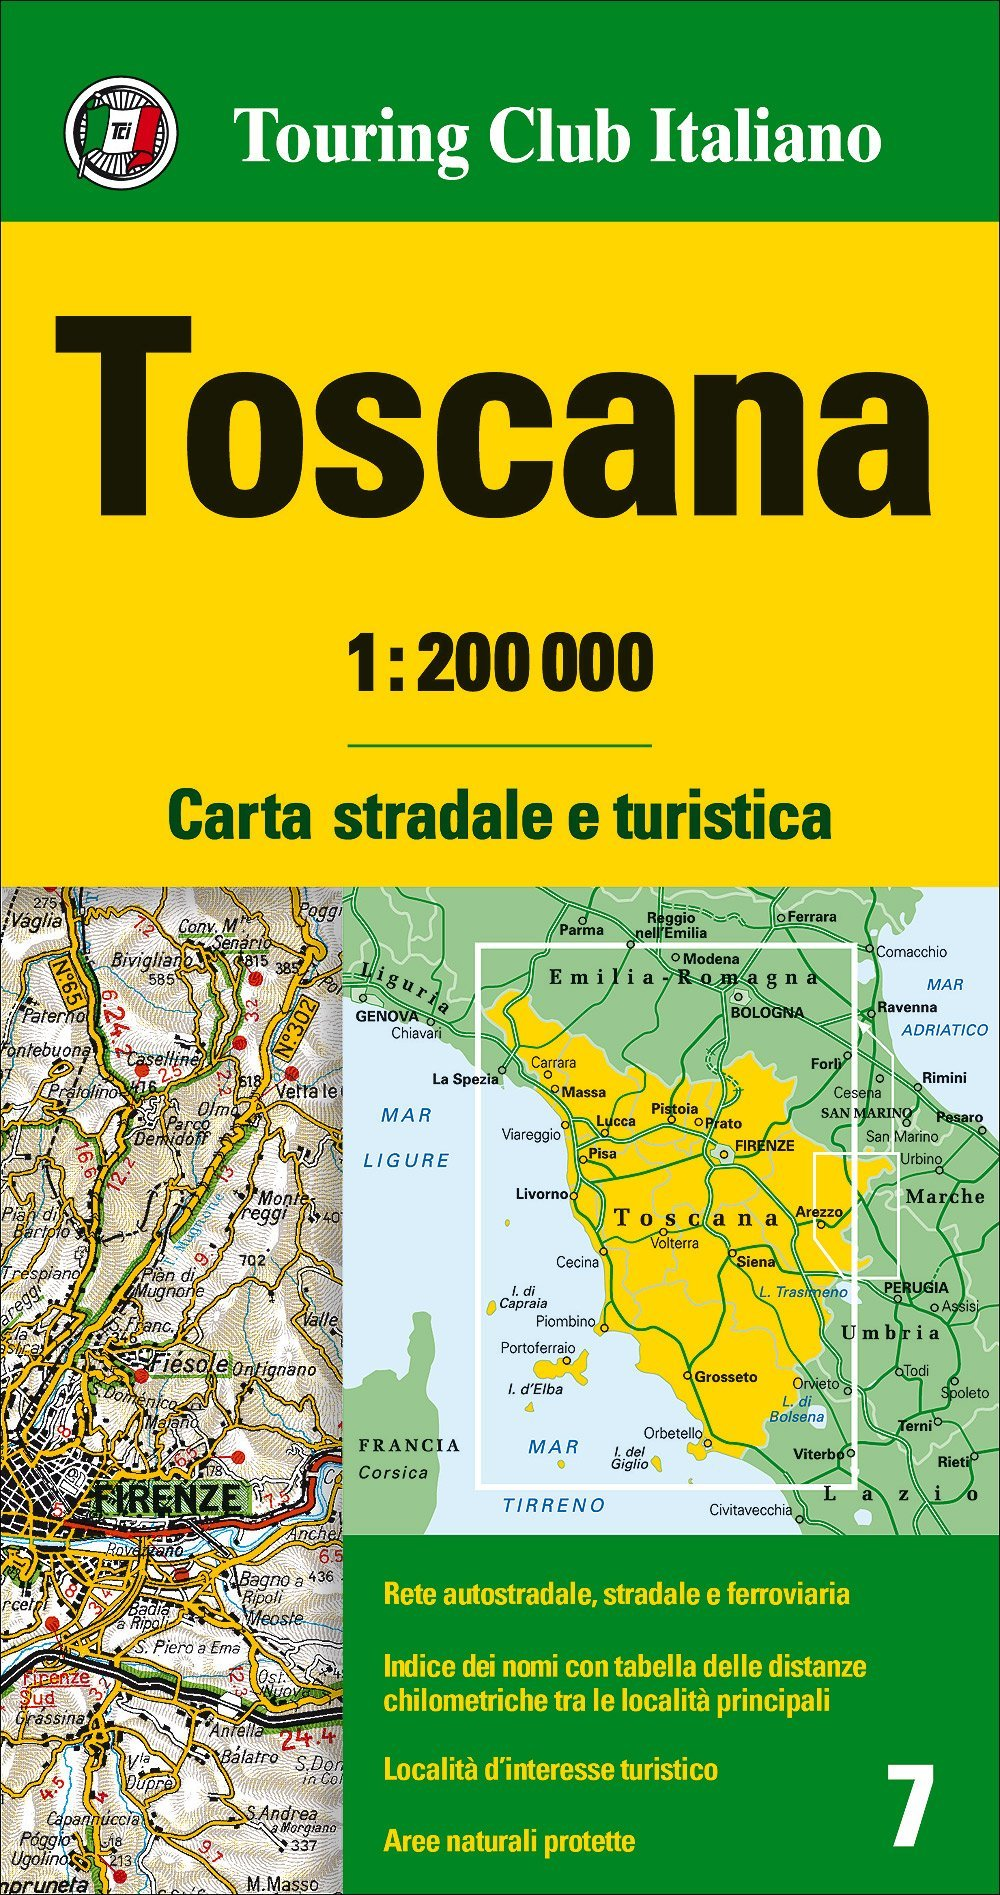 Cartina Stradale Toscana Umbria.Amazon It Toscana 1 200 000 Carta Stradale E Turistica Lingua Inglese Aa Vv Libri In Altre Lingue